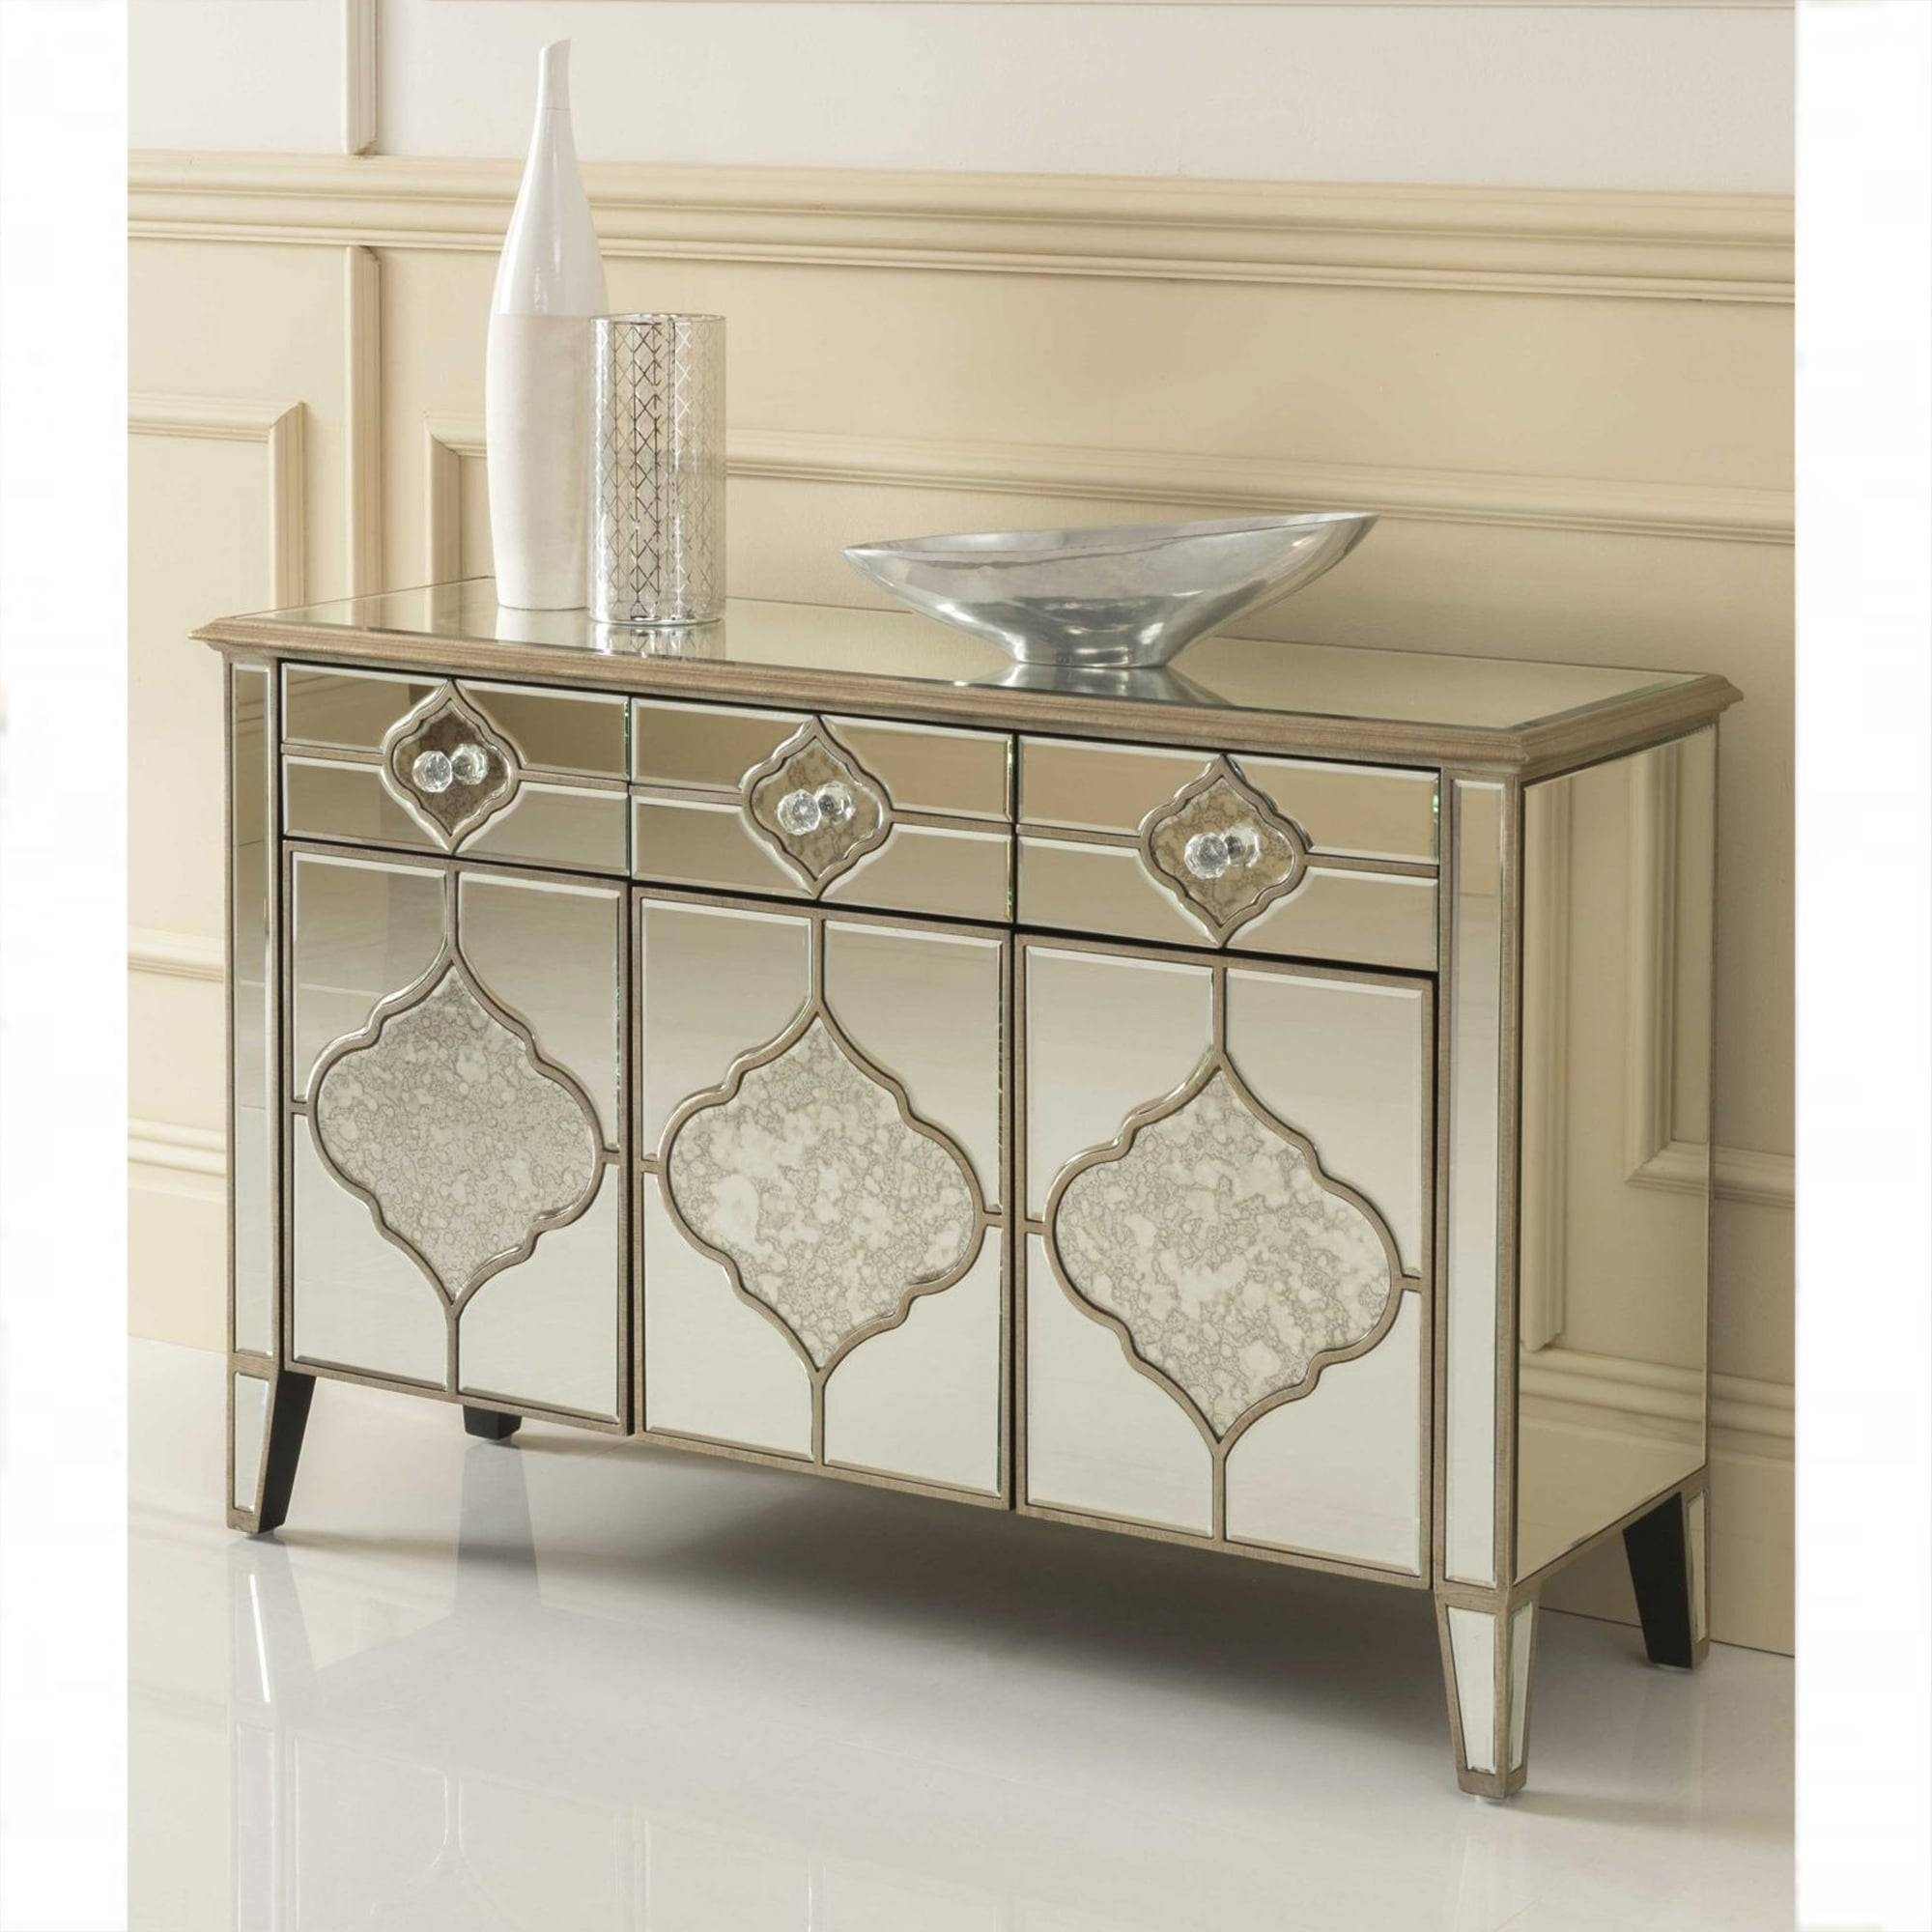 Sassari Mirrored Sideboard | Venetian Glass Furniture regarding Mirrored Sideboards (Image 22 of 30)